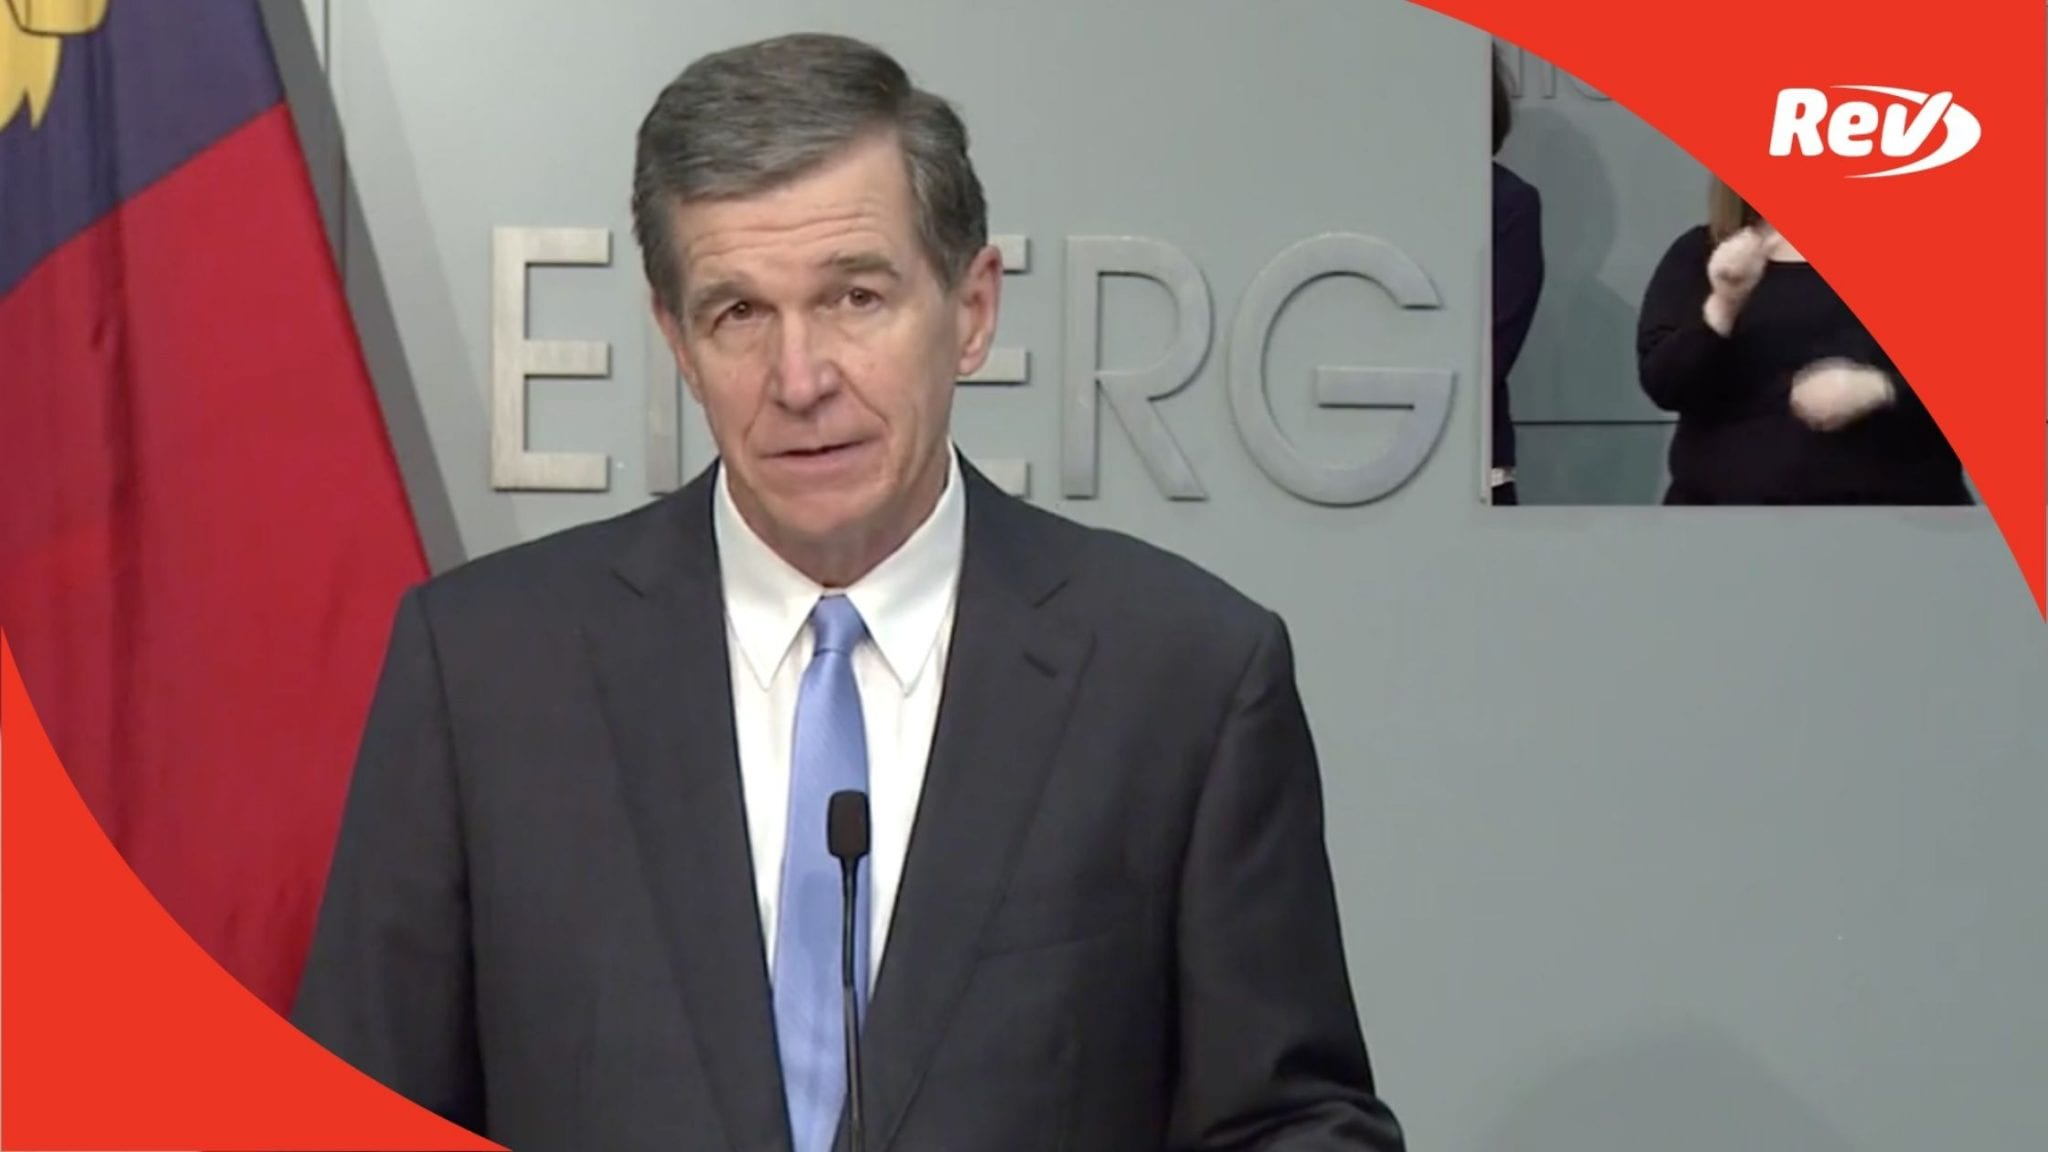 North Carolina Gov. Roy Cooper Press Conference Transcript November 23